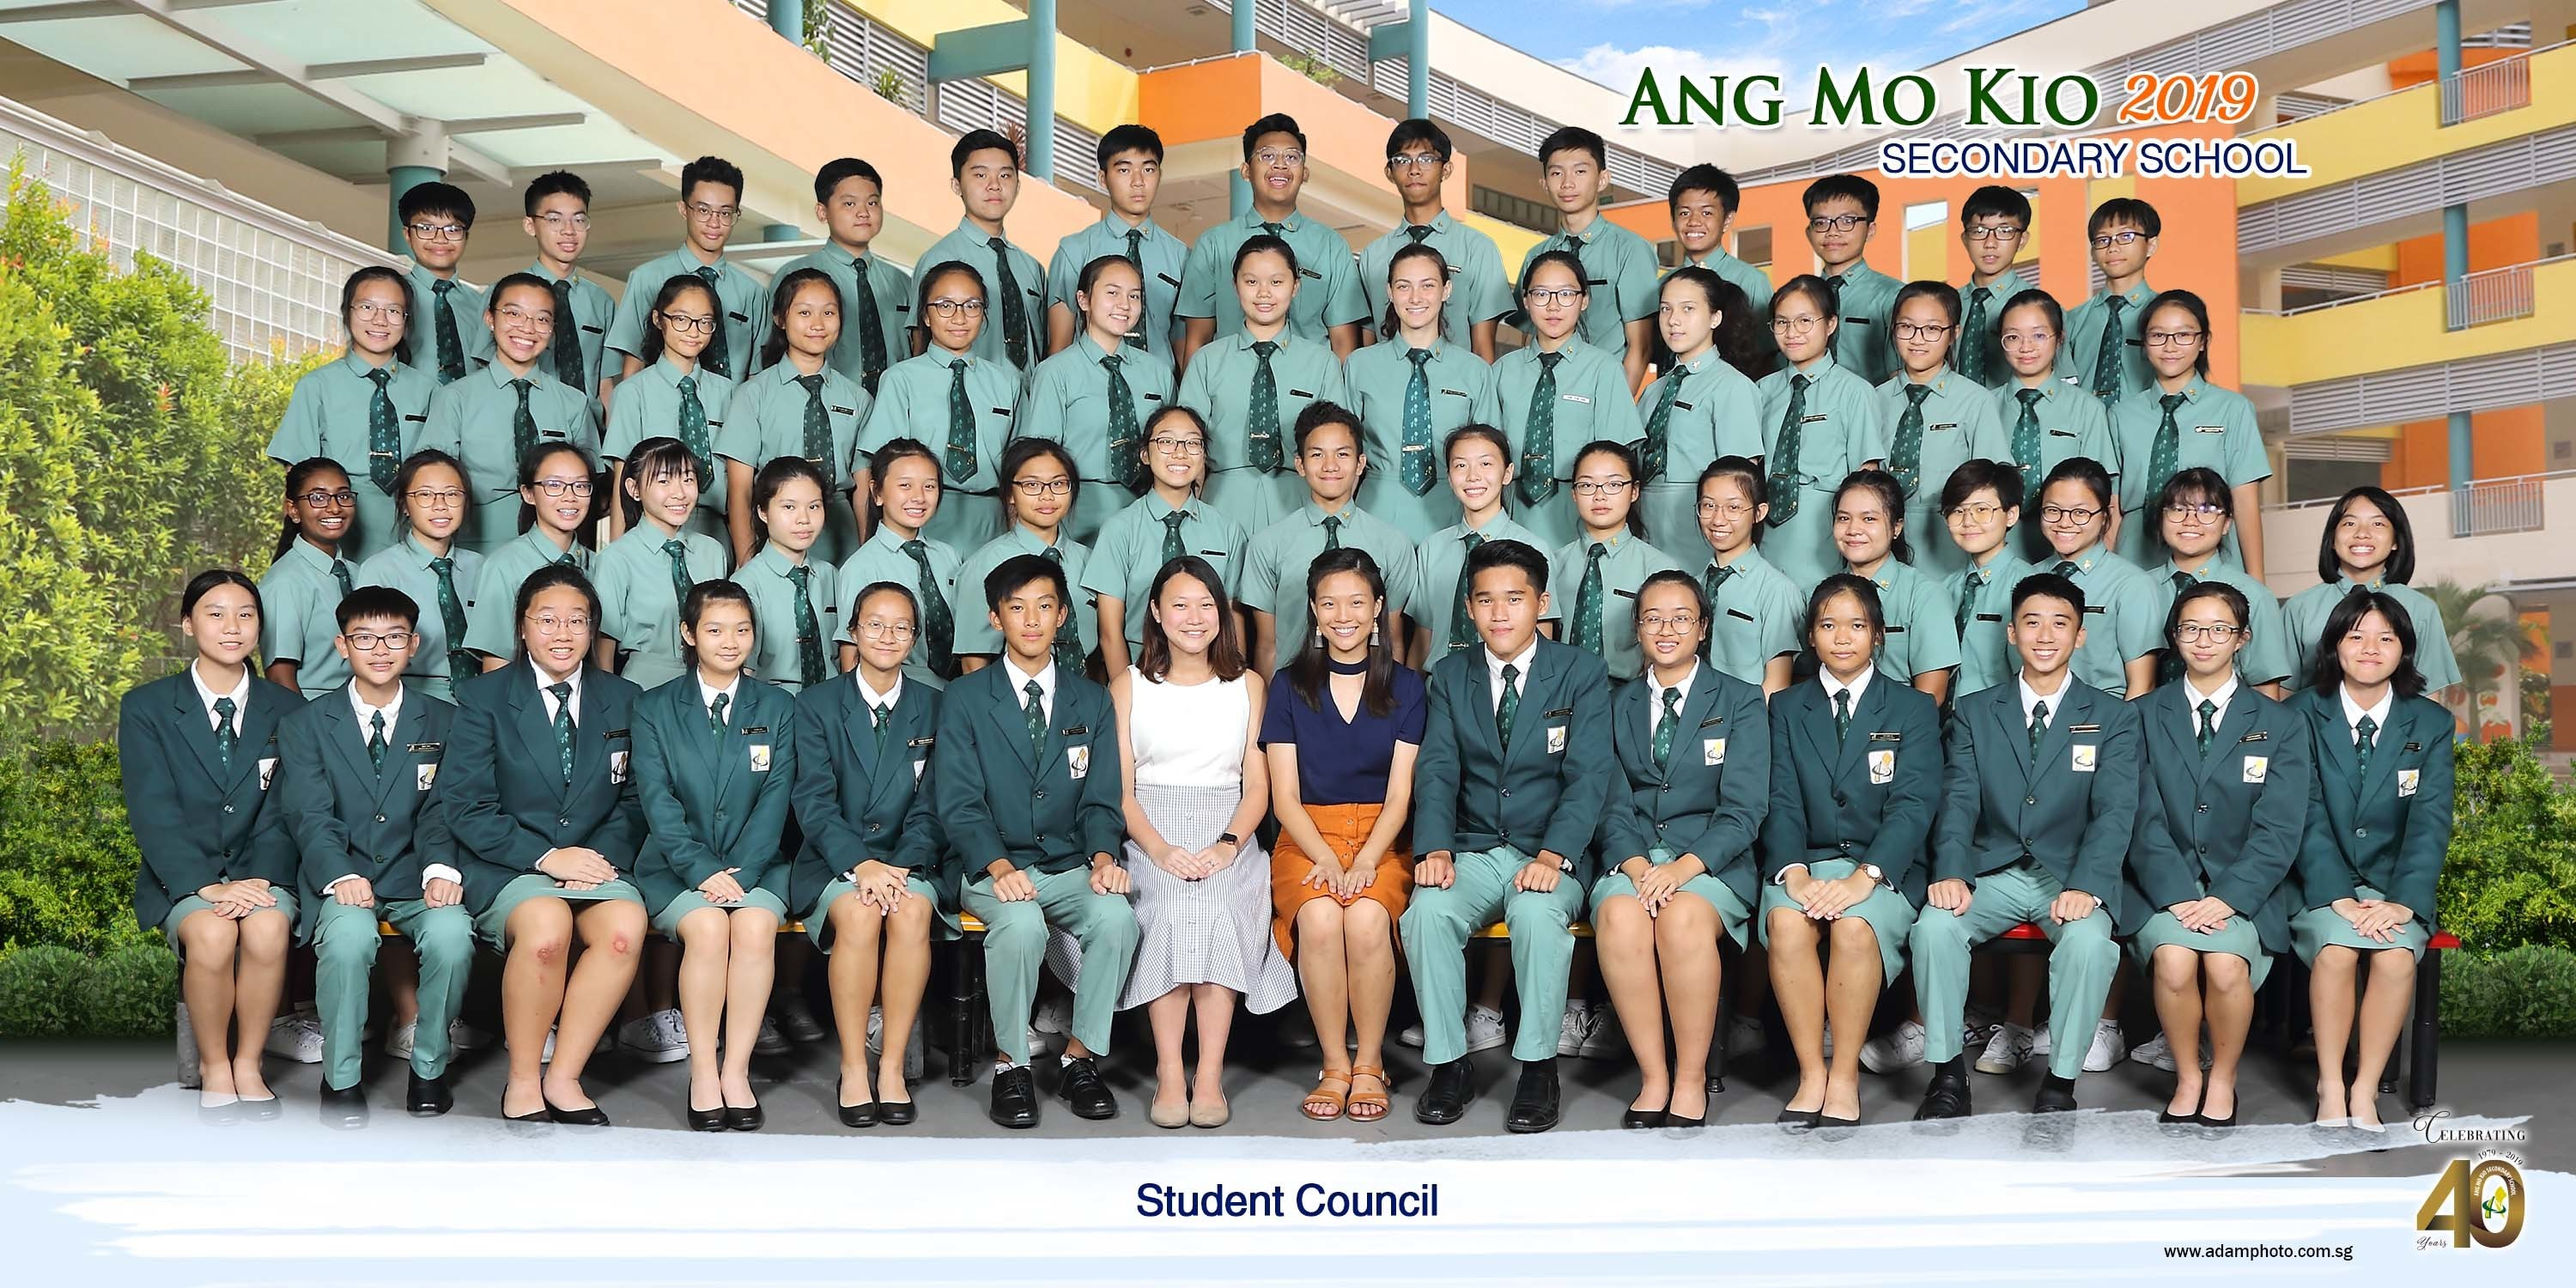 student council 2019.jpg